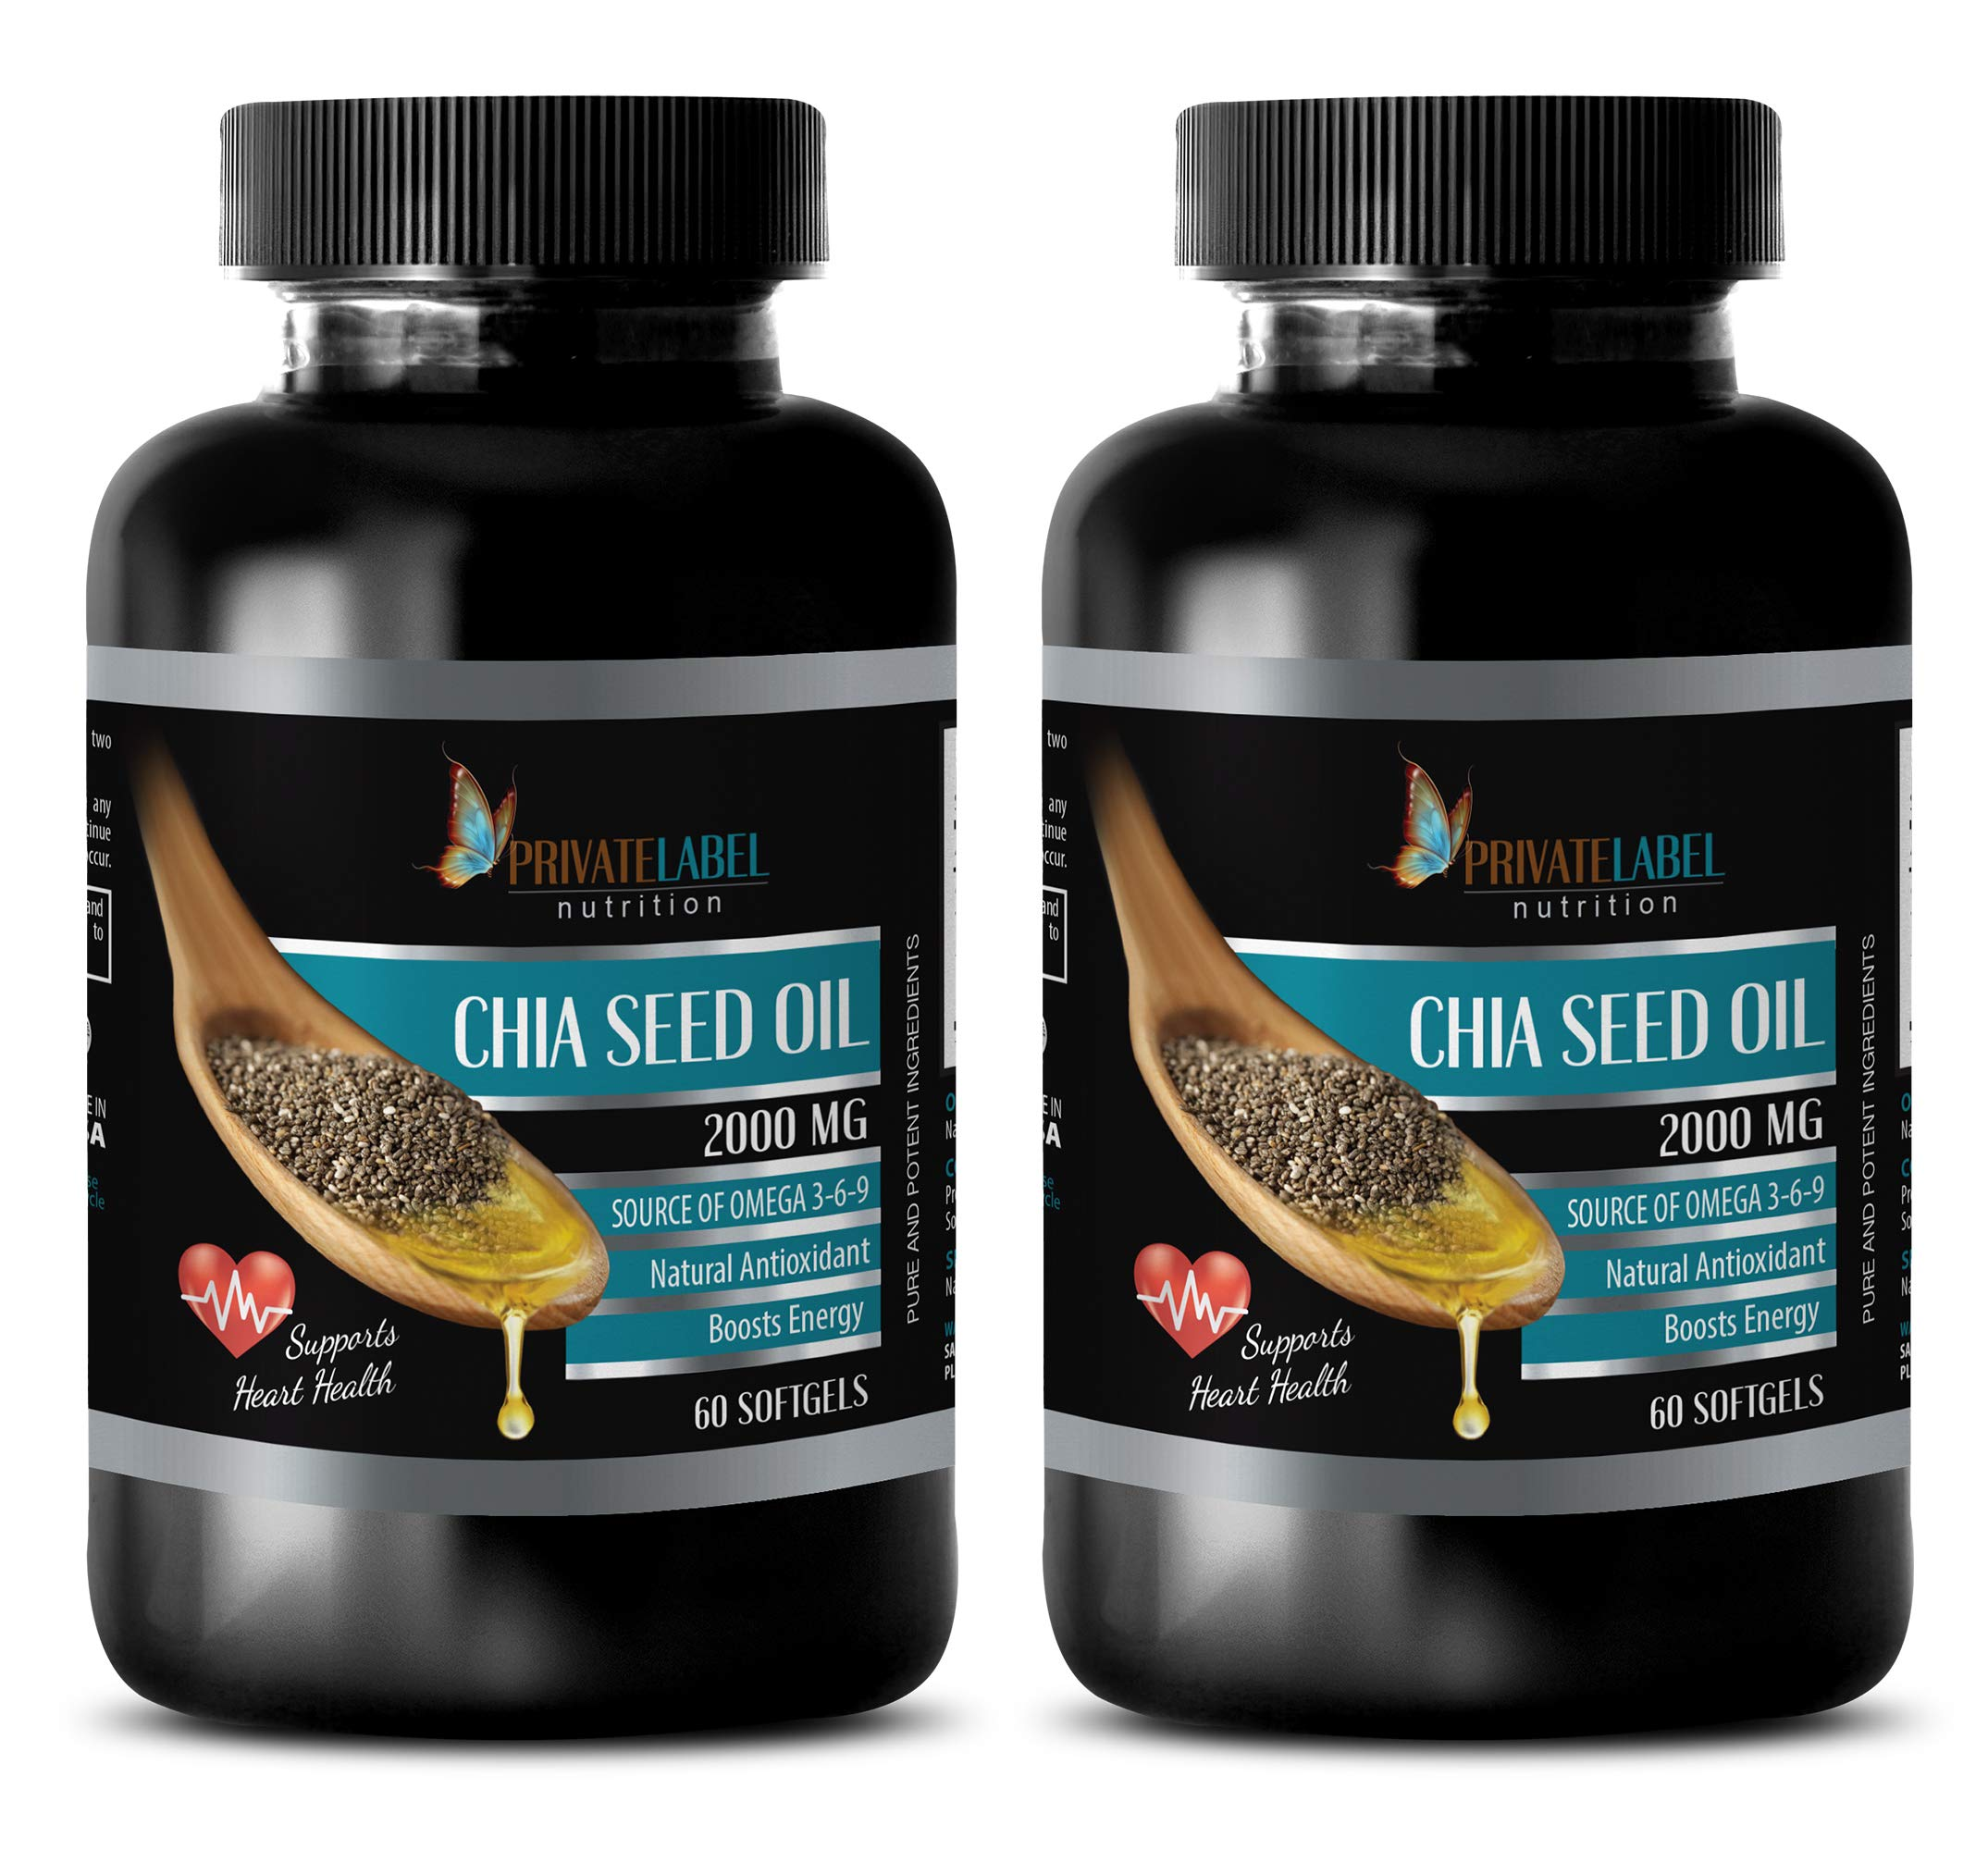 Memory Supplements Natural - CHIA Seed Oil 2000MG - Source of Omega 3-6-9 - Supports Heart Health - chia Seed Protein - 2 Bottles (120 Softgels) by PRIVATE LABEL LLC